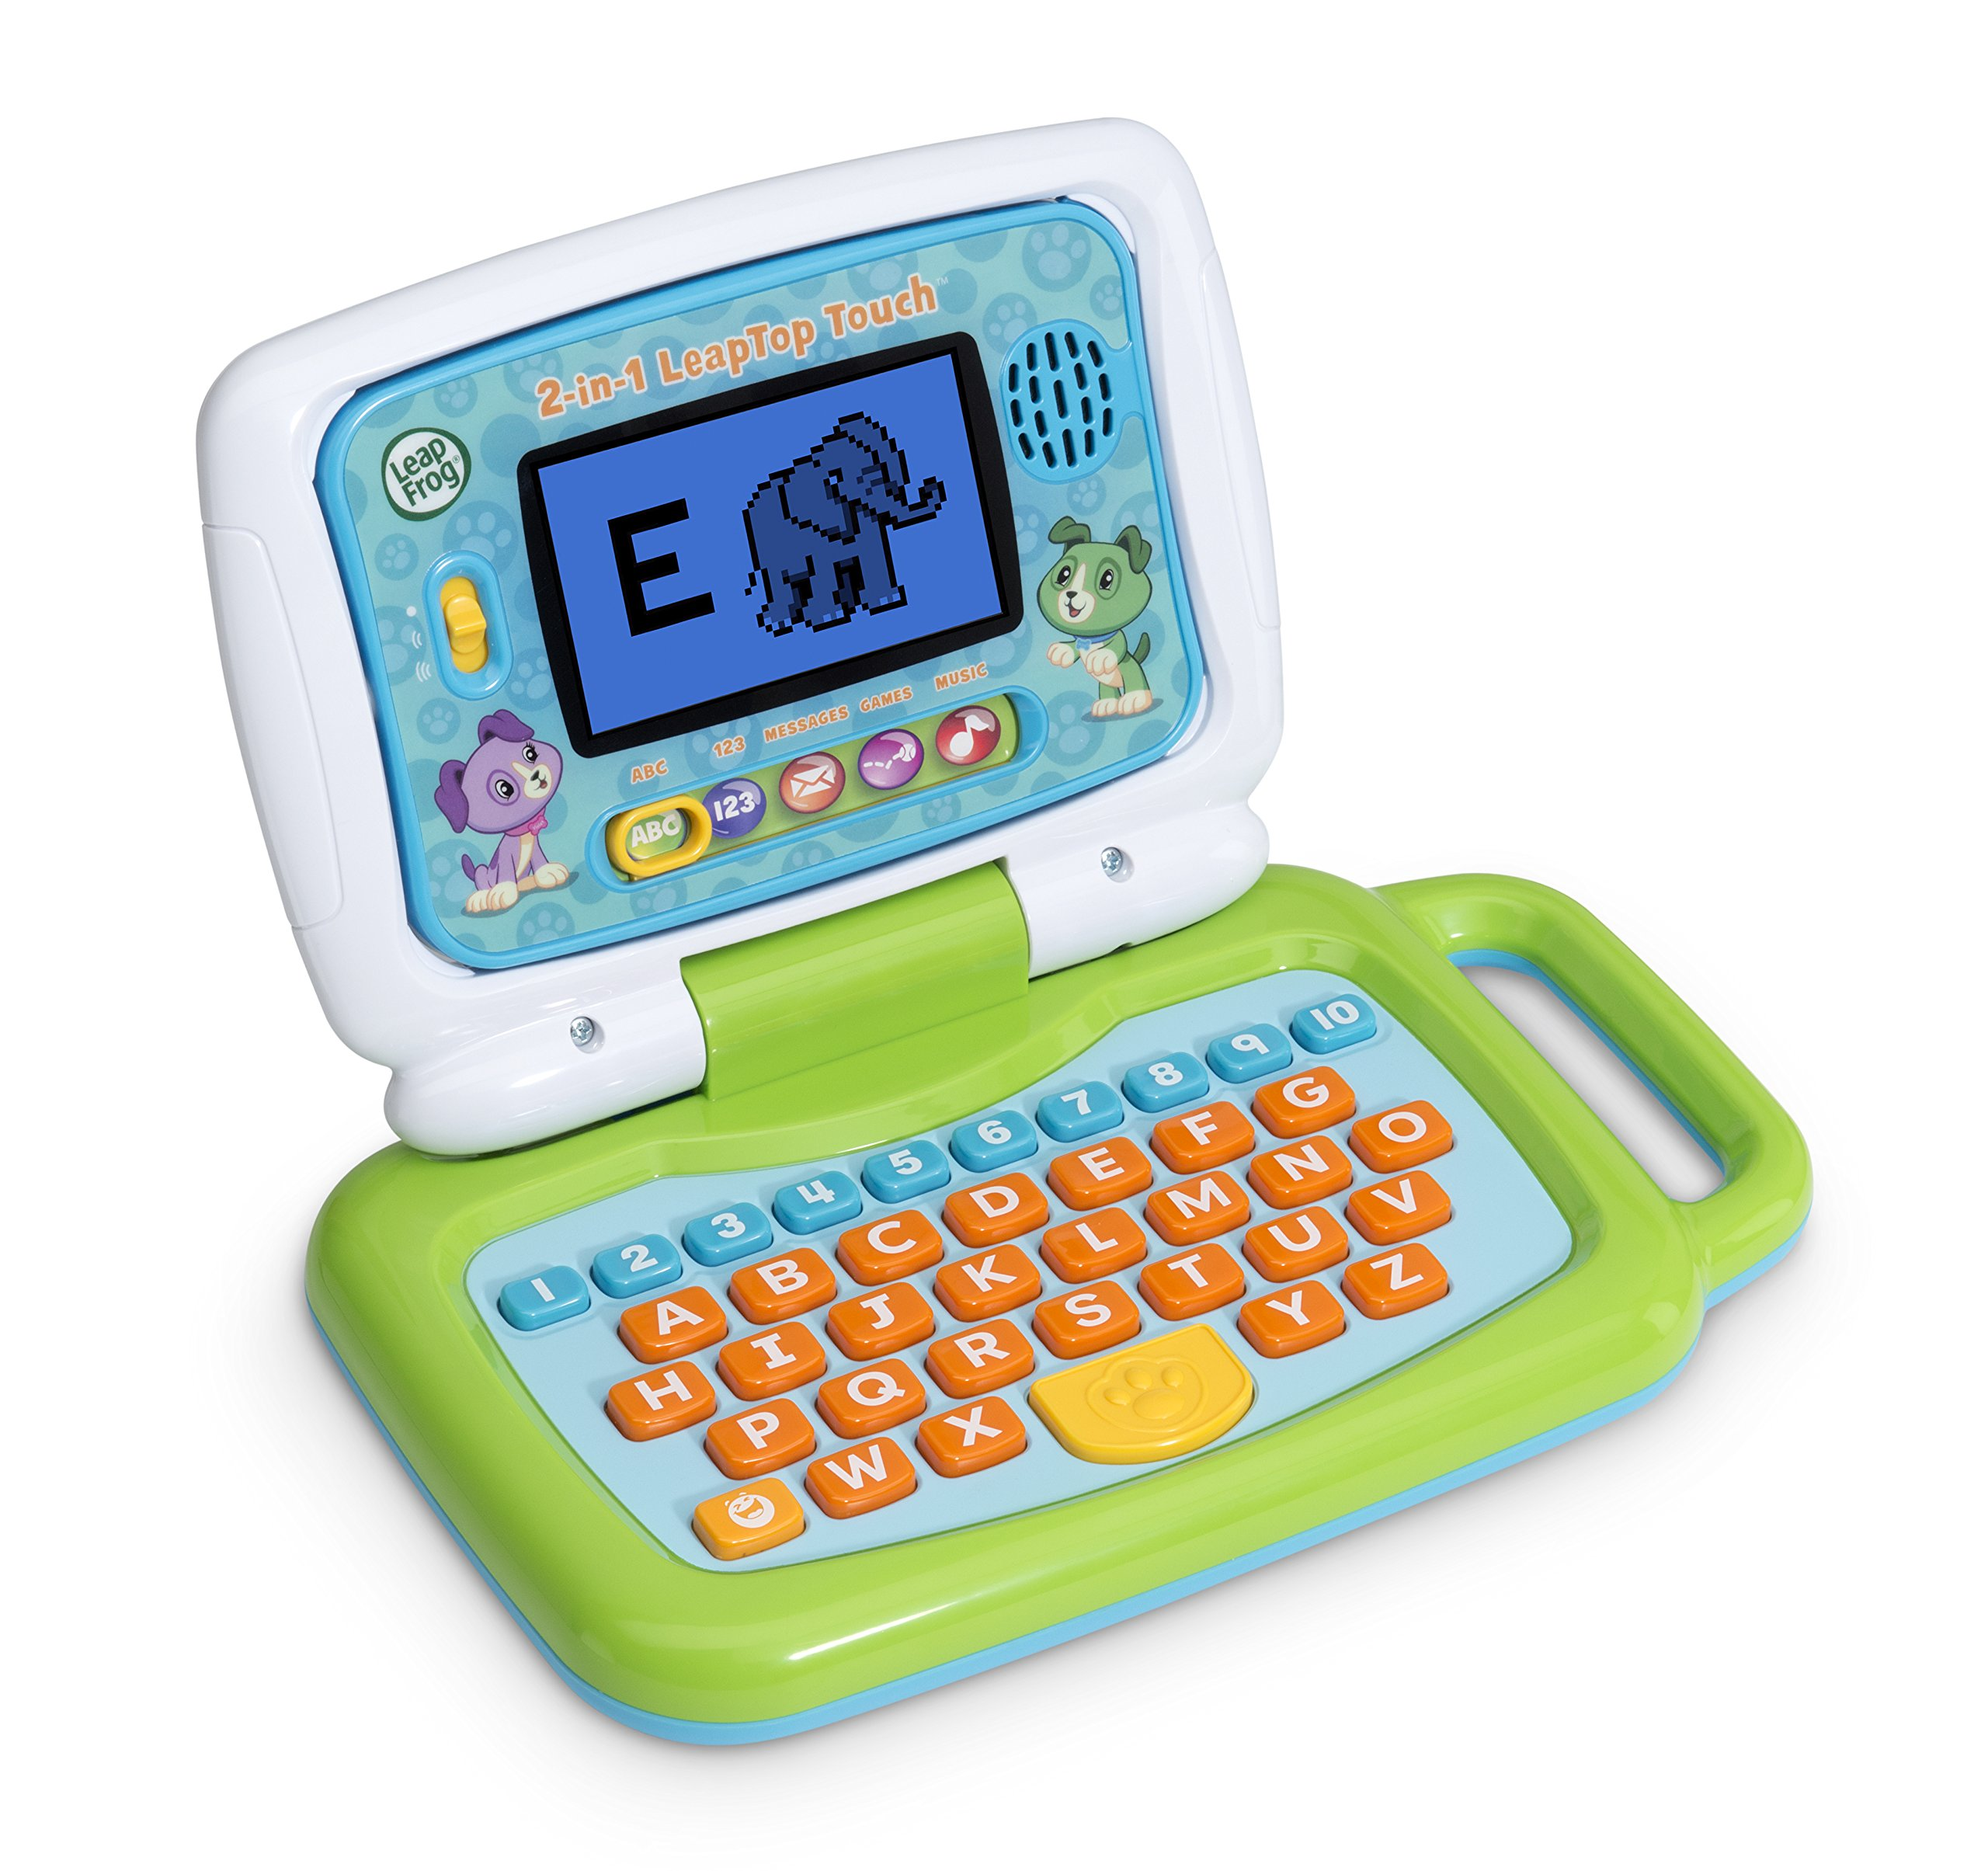 LeapFrog 2-in-1 LeapTop Touch by LeapFrog (Image #2)